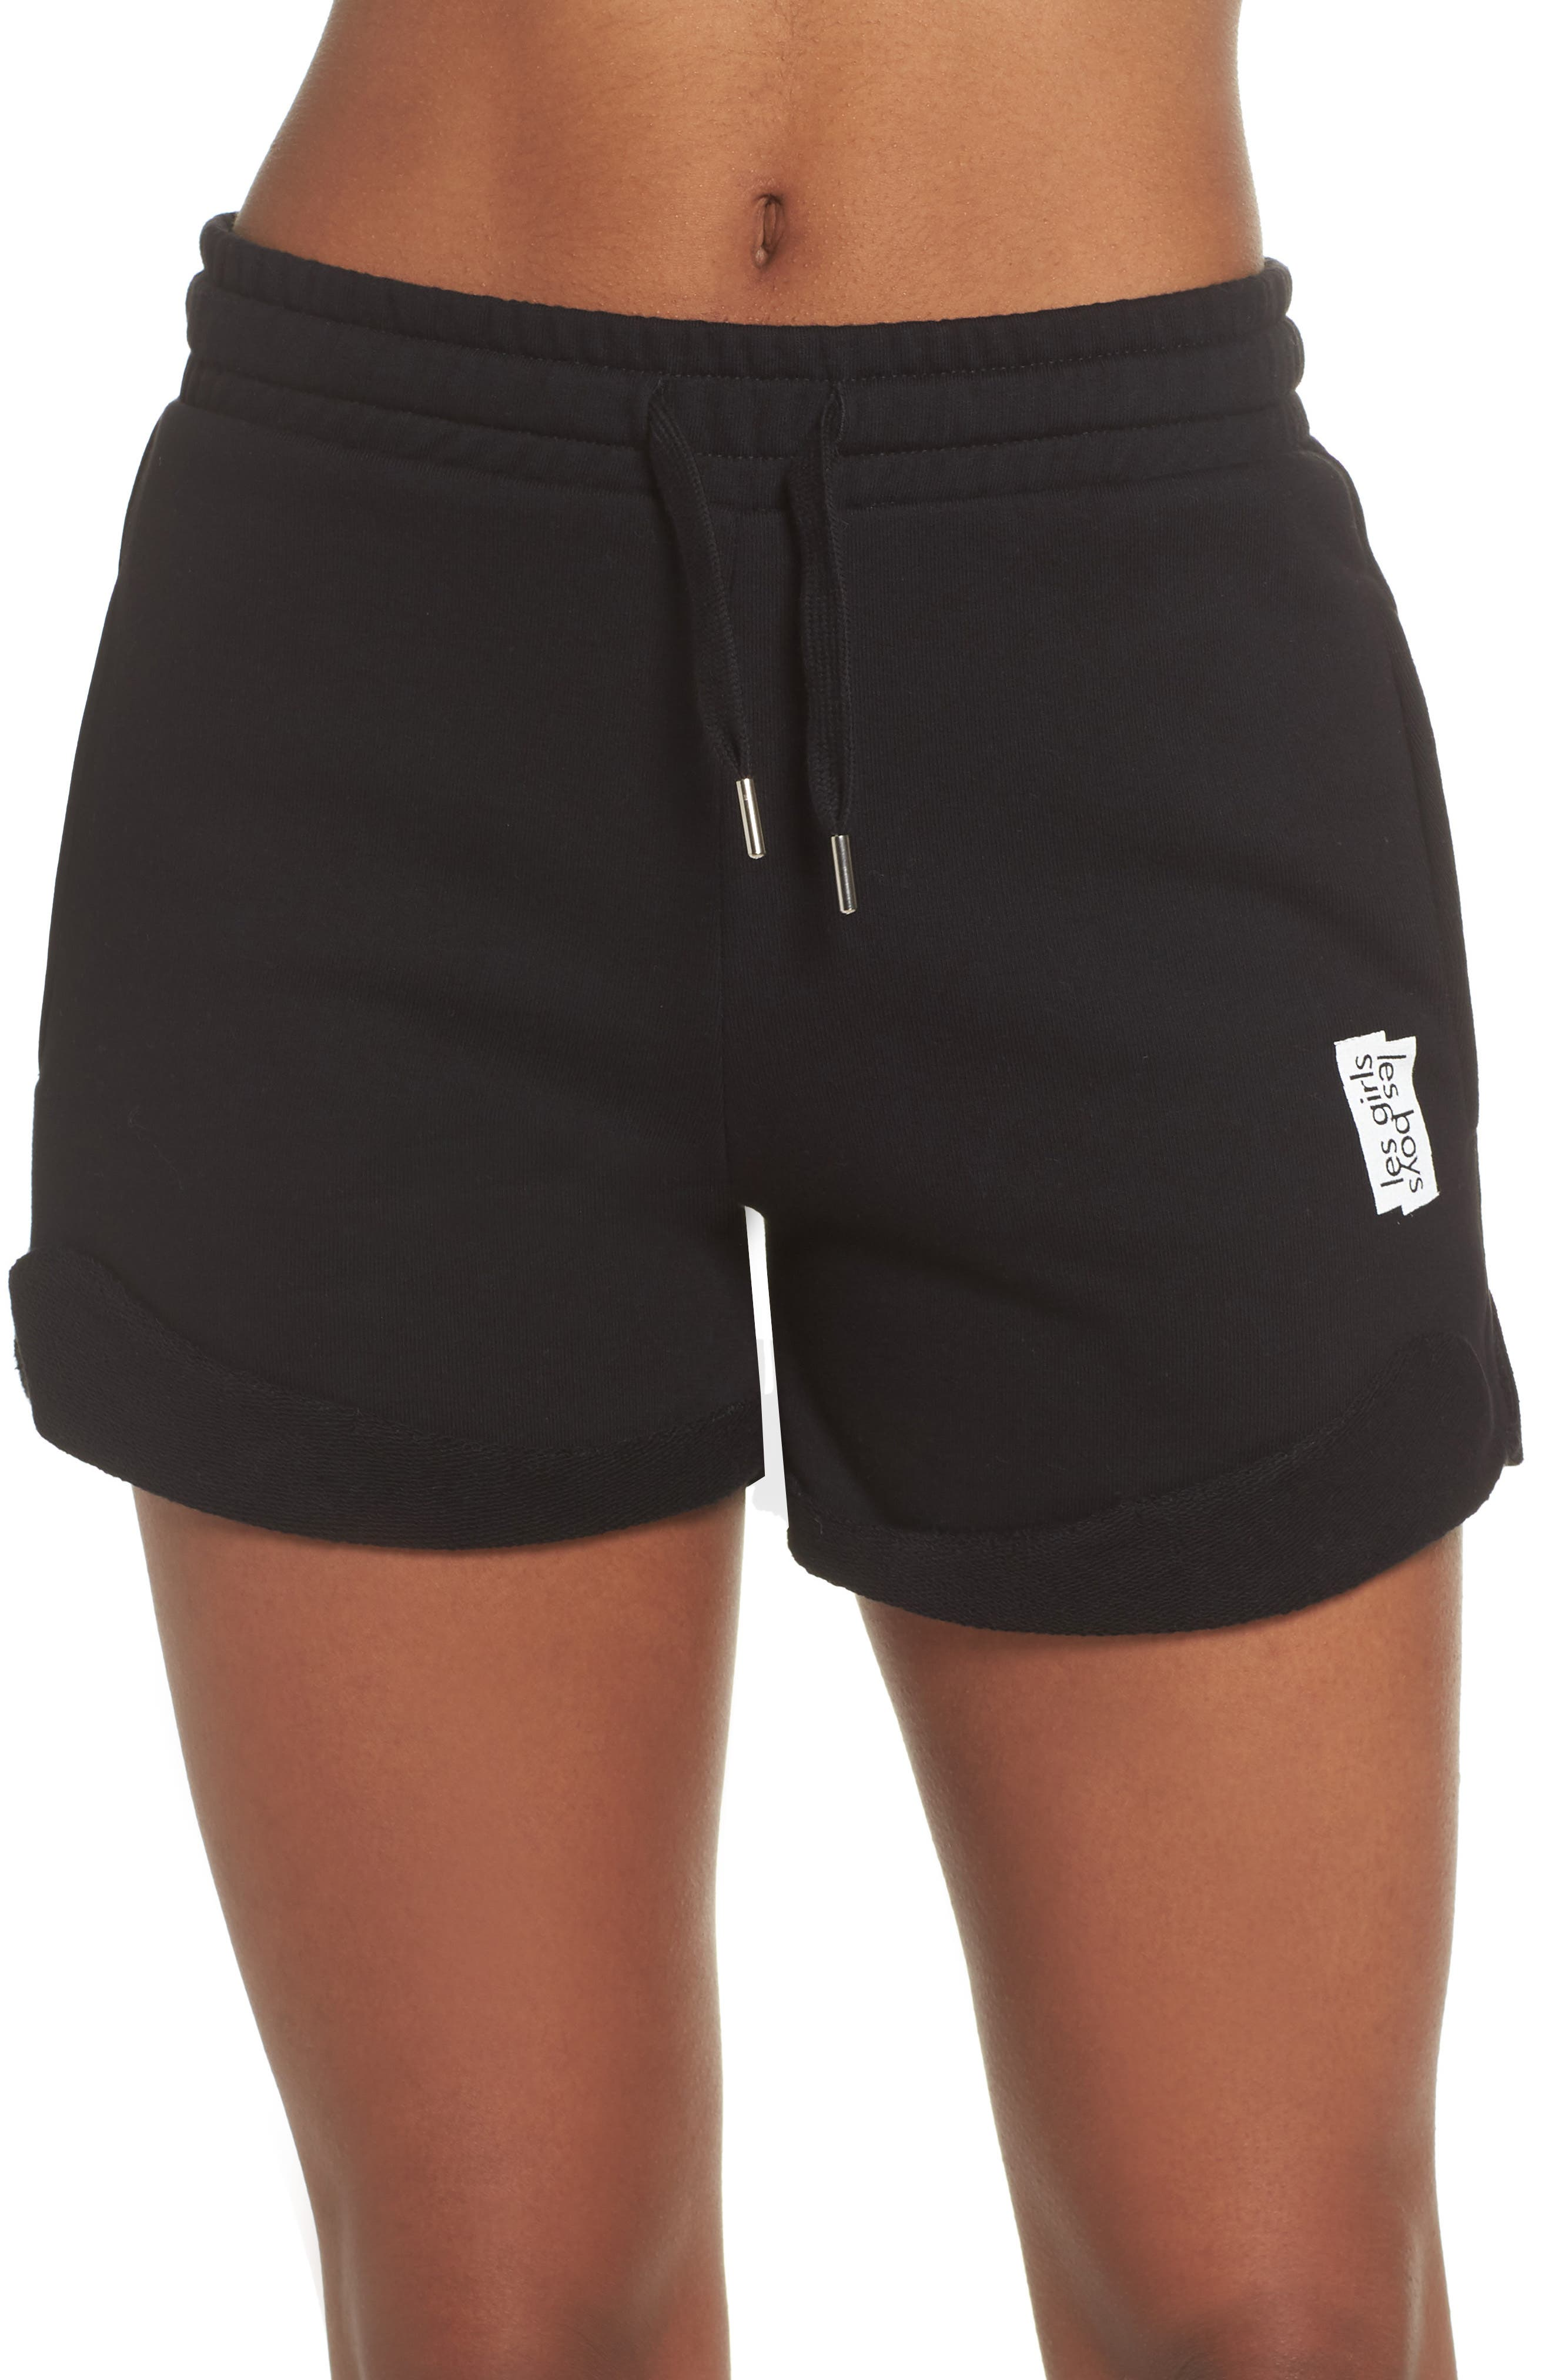 Les Girls Les Boys French Terry High Waist Shorts